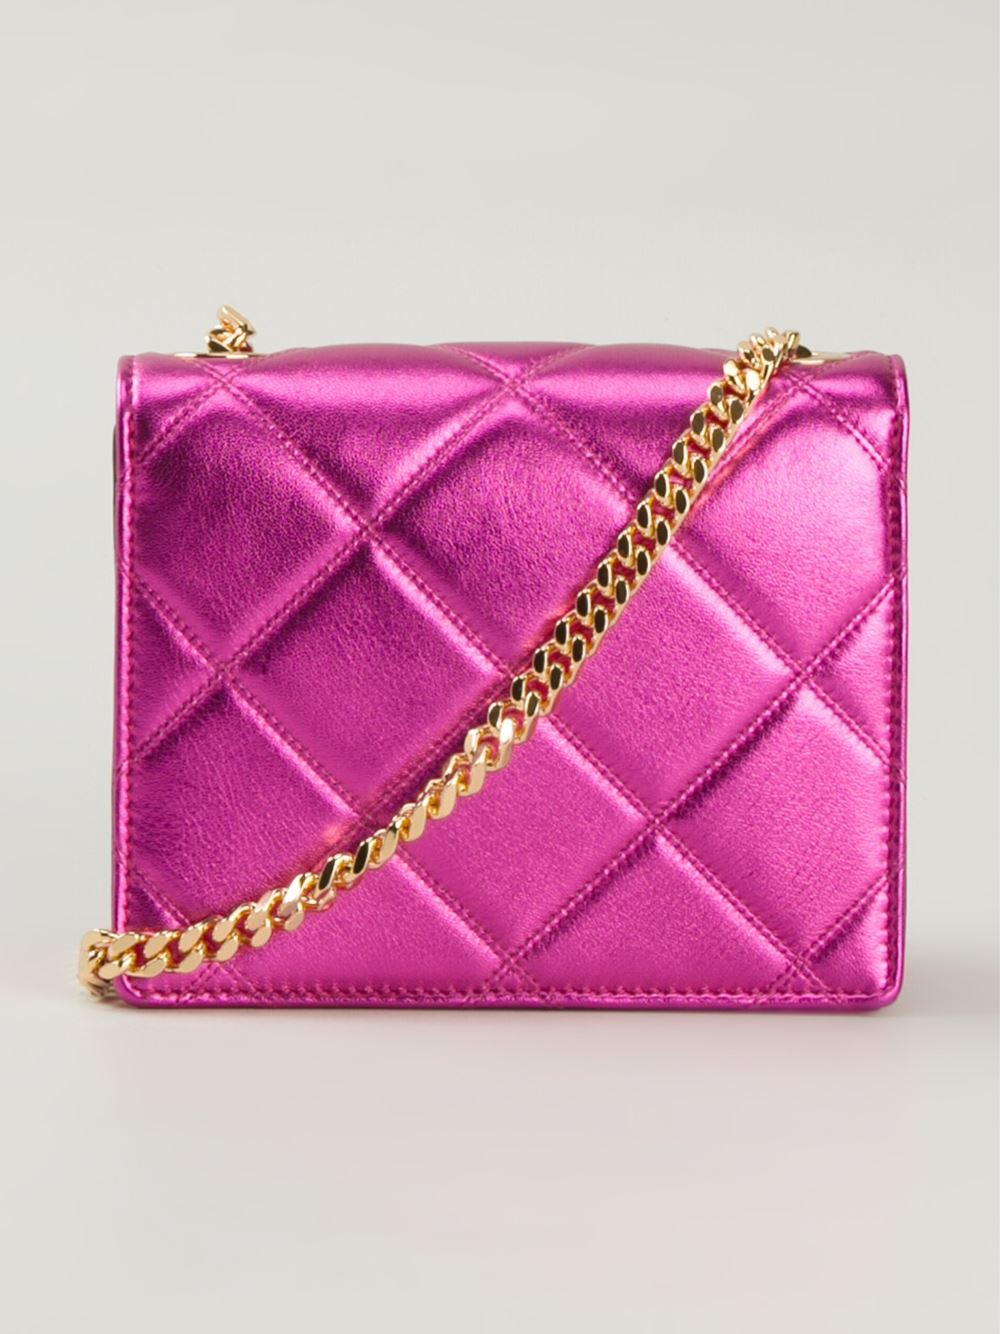 Marc Jacobs Leather Mini 'metallic Party Bow Trouble' Crossbody Bag in Pink/Purple (Pink)